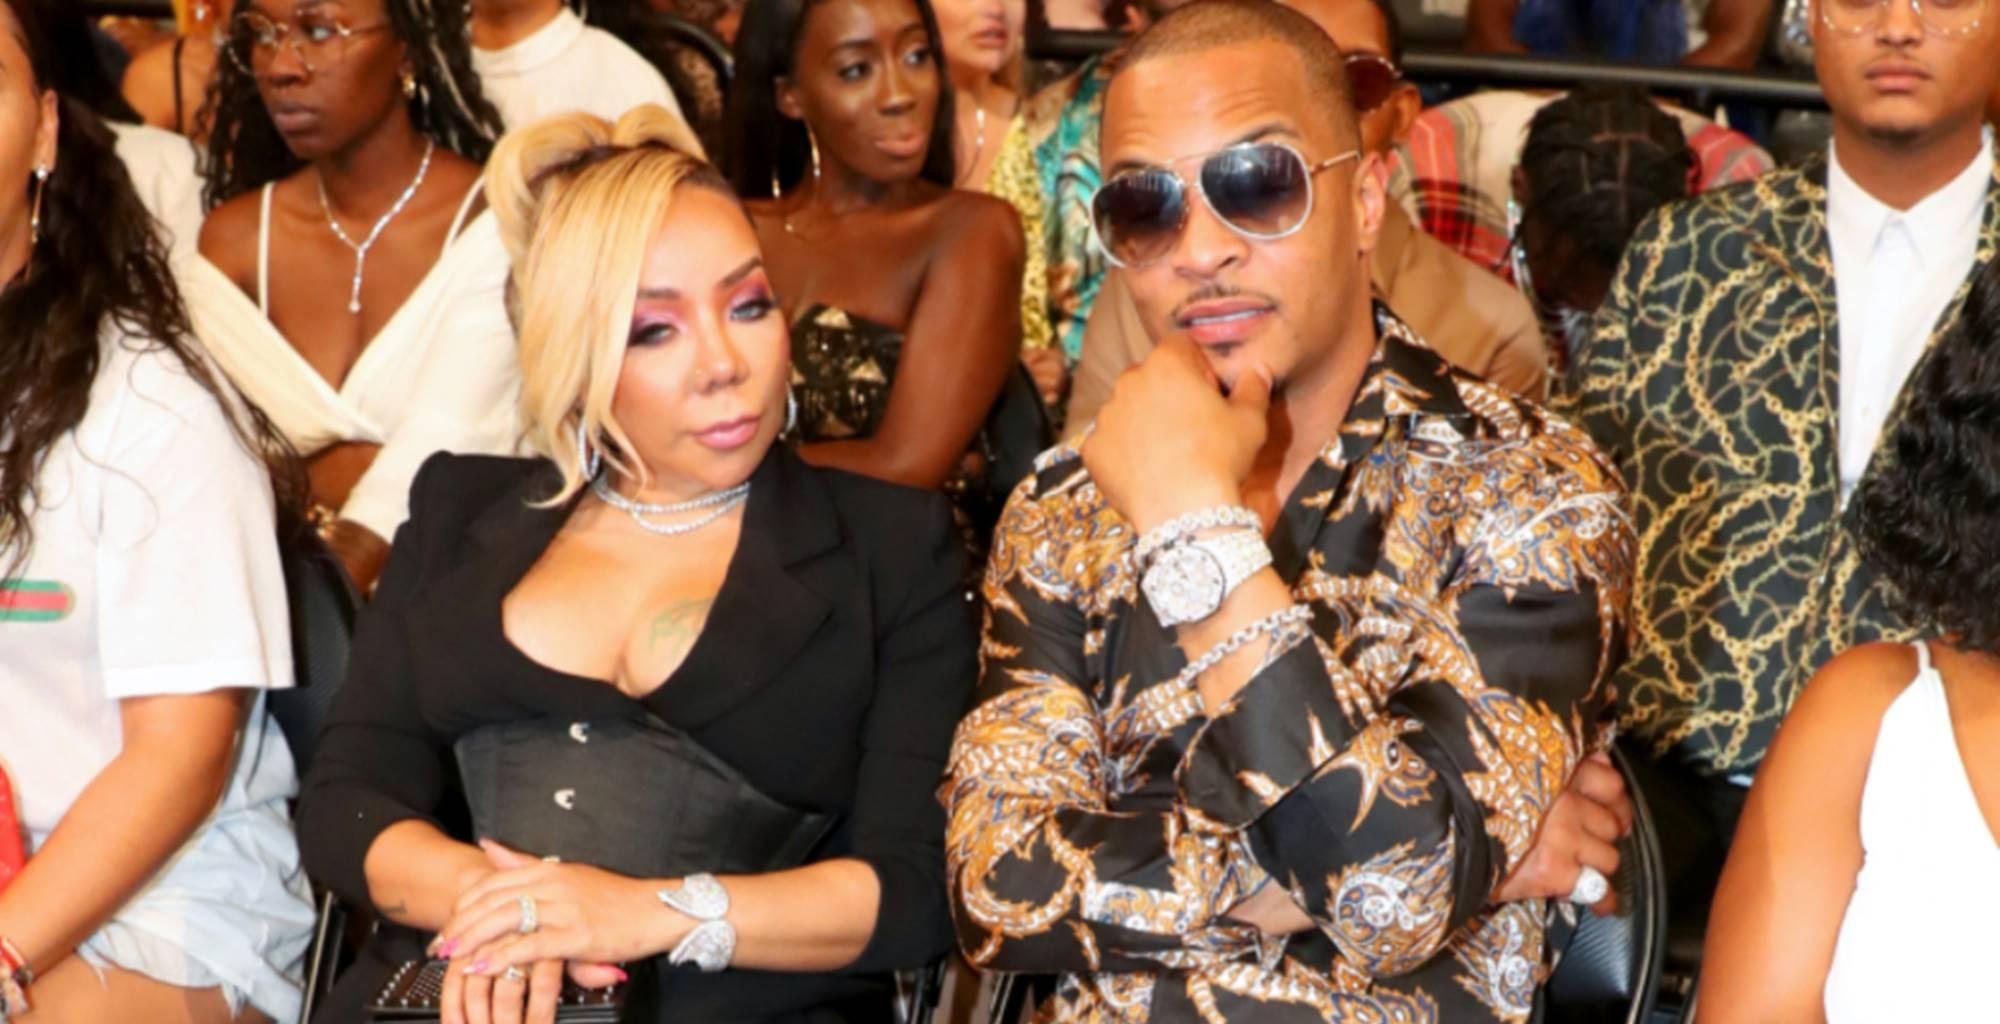 T.I. Has Some Things To Say To Sabrina Peterson - Check Out His Messages